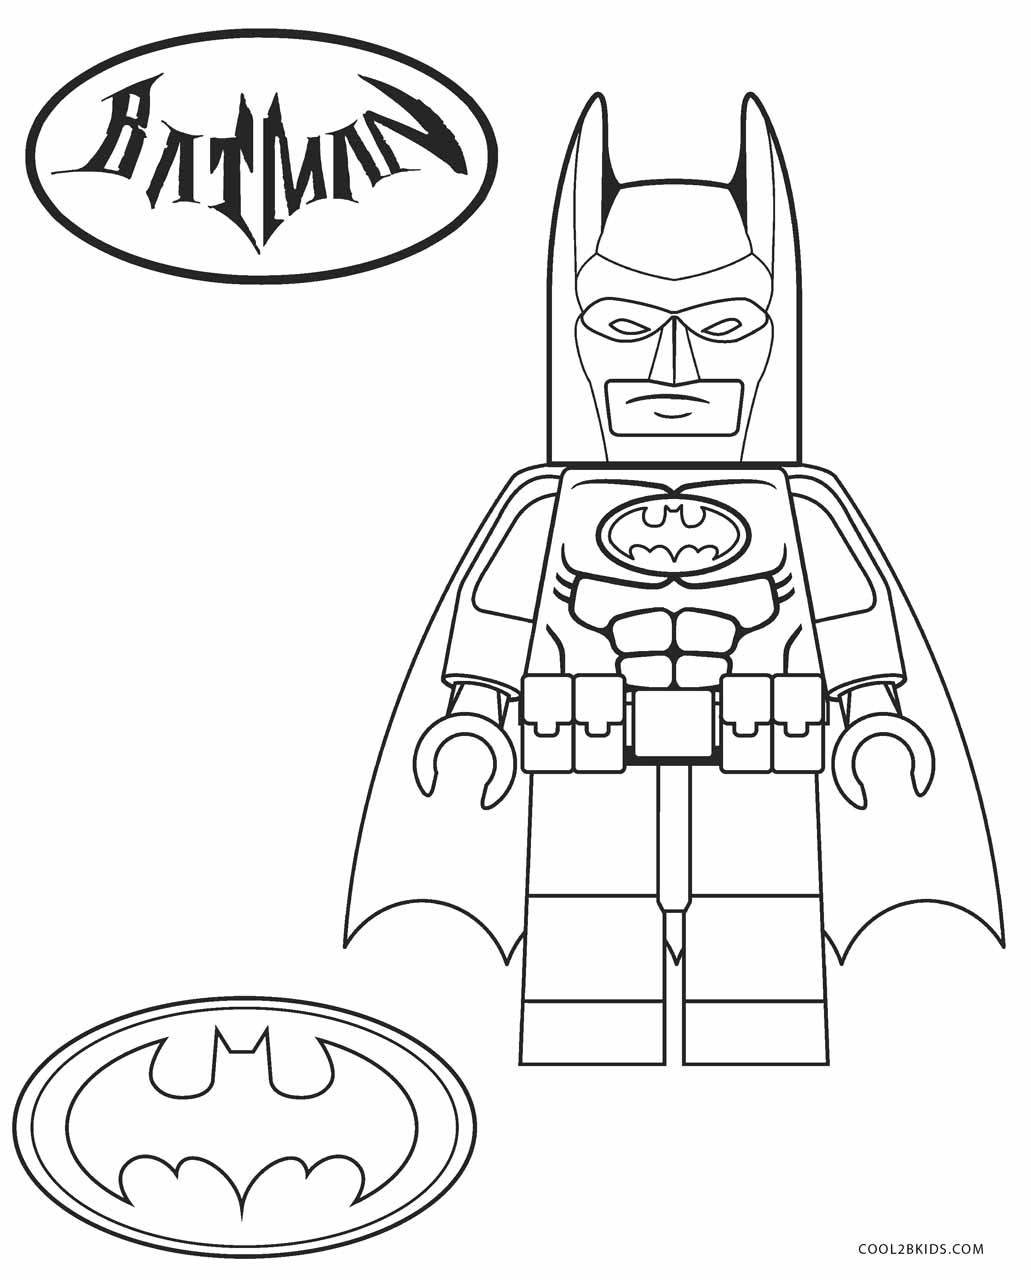 free lego coloring pages to print free printable lego coloring pages for kids cool2bkids lego coloring to pages free print